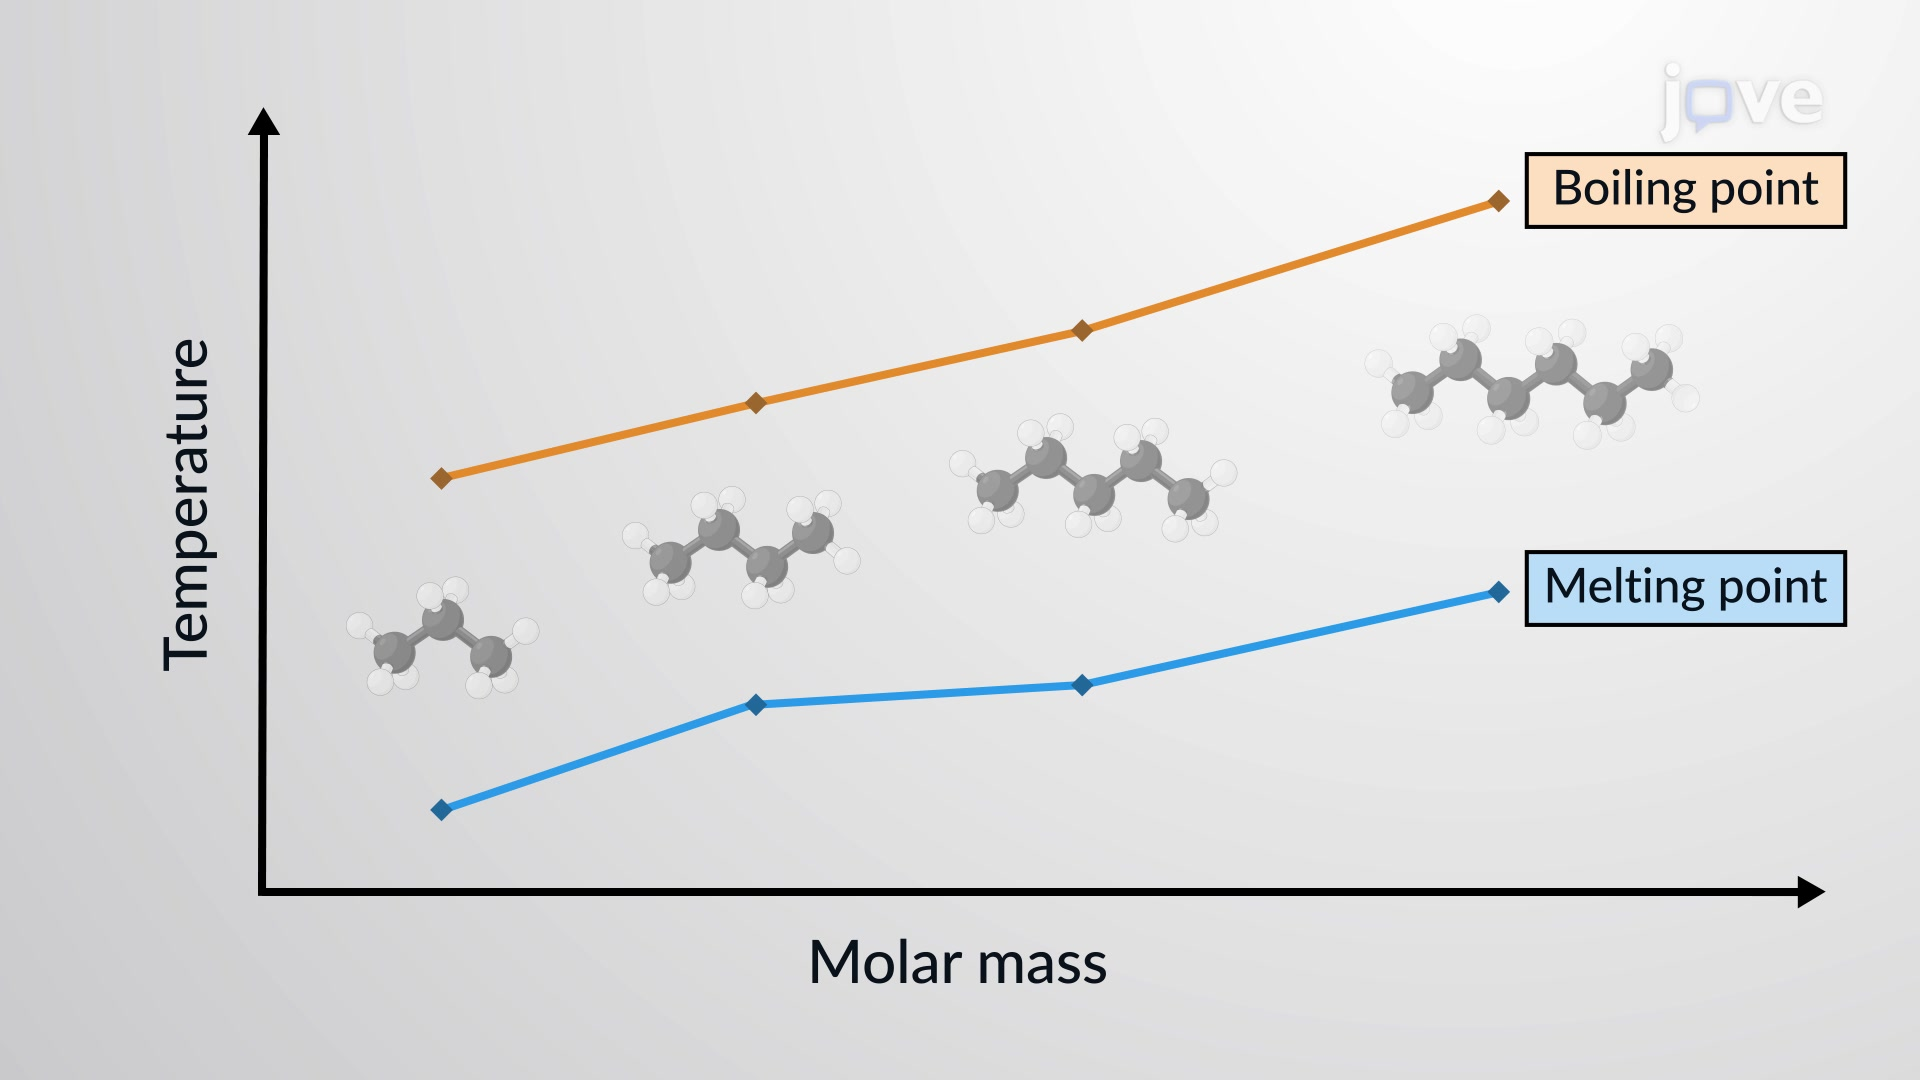 Comparing Intermolecular Forces: Melting Point, Boiling Point, and Miscibility